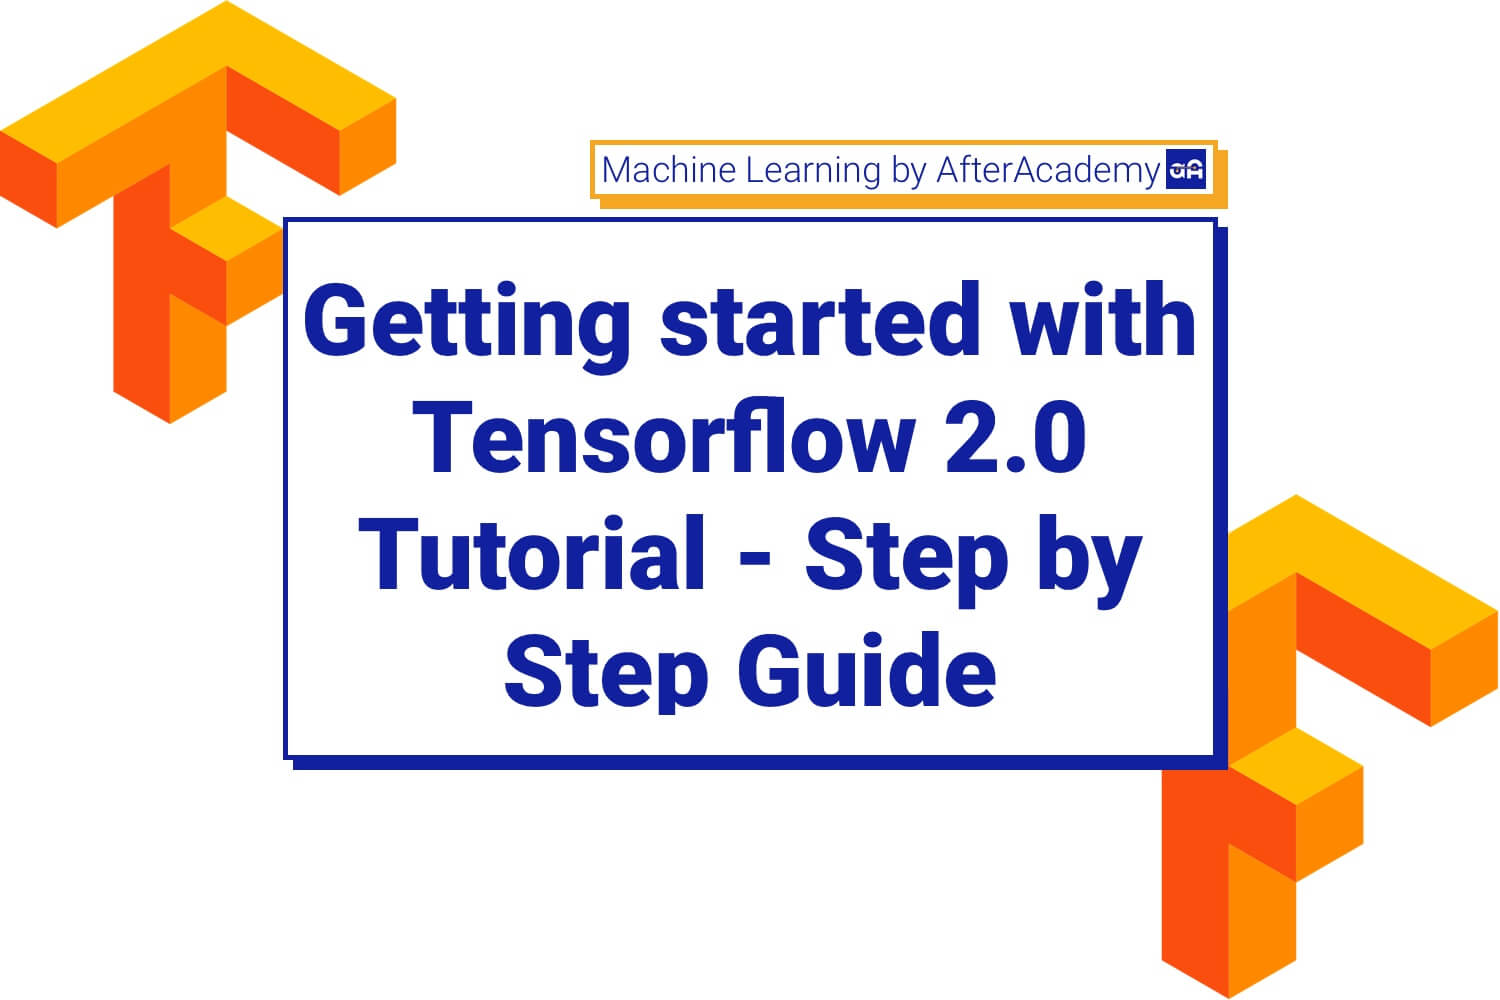 Getting started with Tensorflow 2.0 Tutorial - Step by step Guide